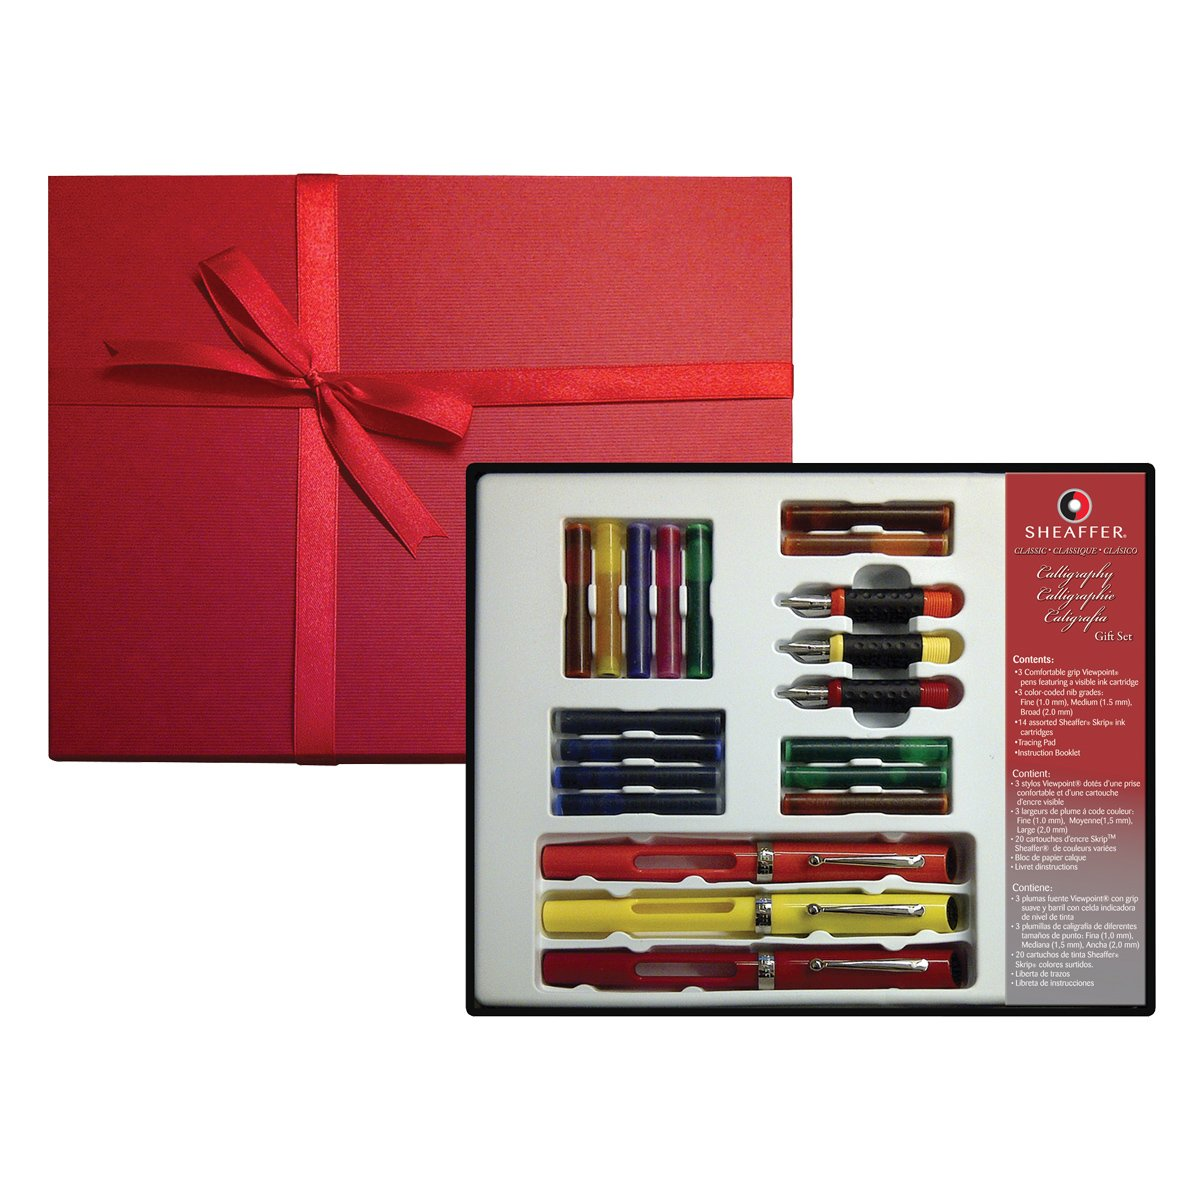 Sheaffer Calligraphy Gift Set, 3 Quill Pens, 3 Nib Grades, 14 Ink Cartridges, Step-by-Step Instructions, Beautiful Gift Box (73408)